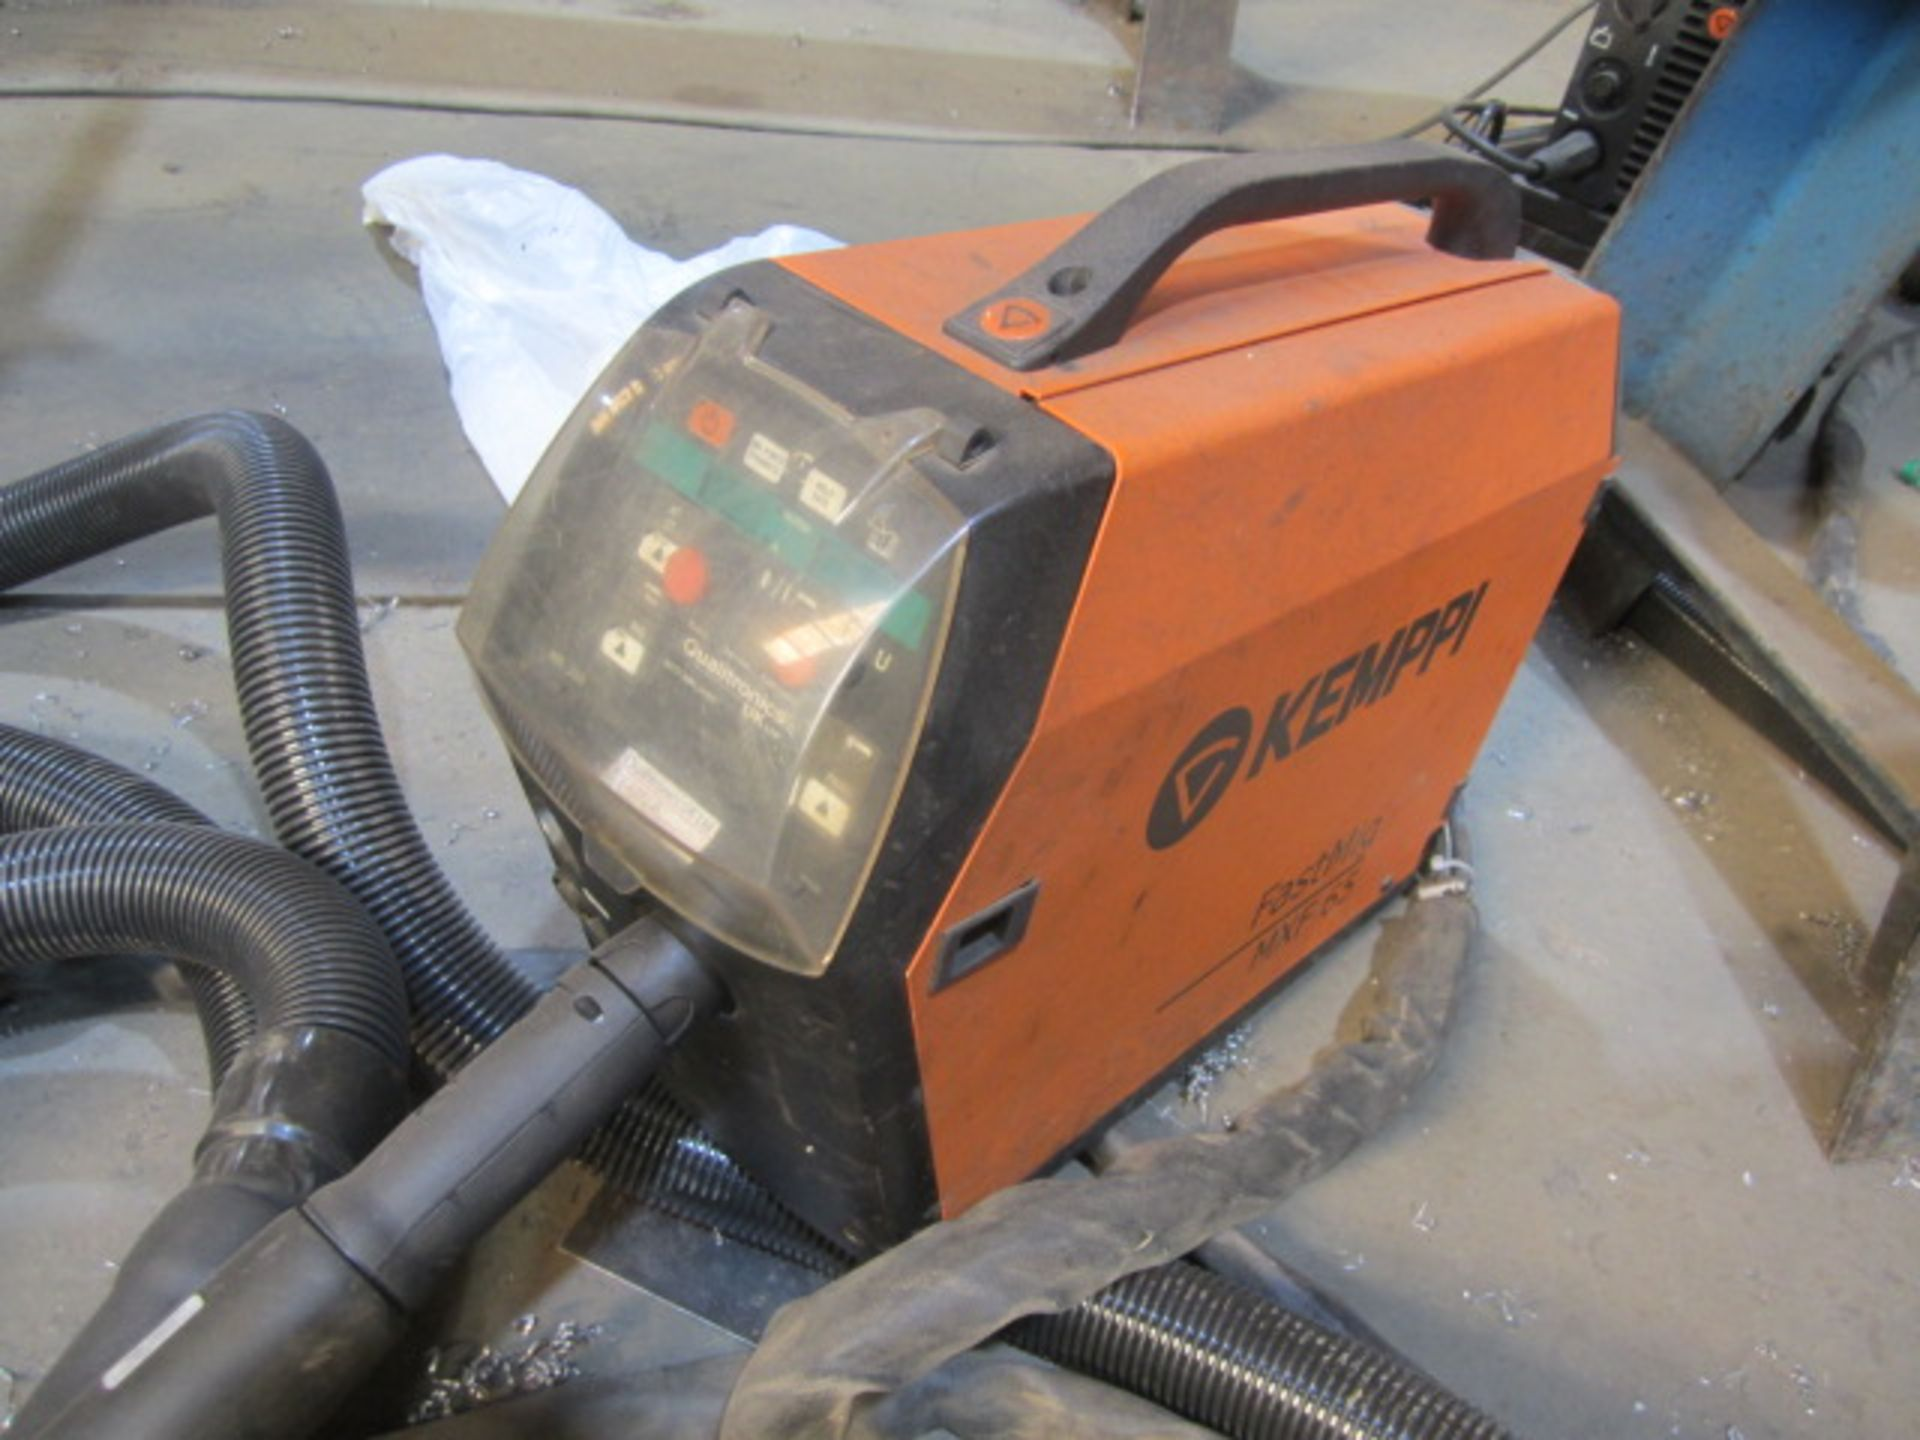 Kemppi Fast Mig M420 mig welder, serial no. 2673739, with Fast Mig MXF65 wire feeder, serial no. - Image 2 of 8